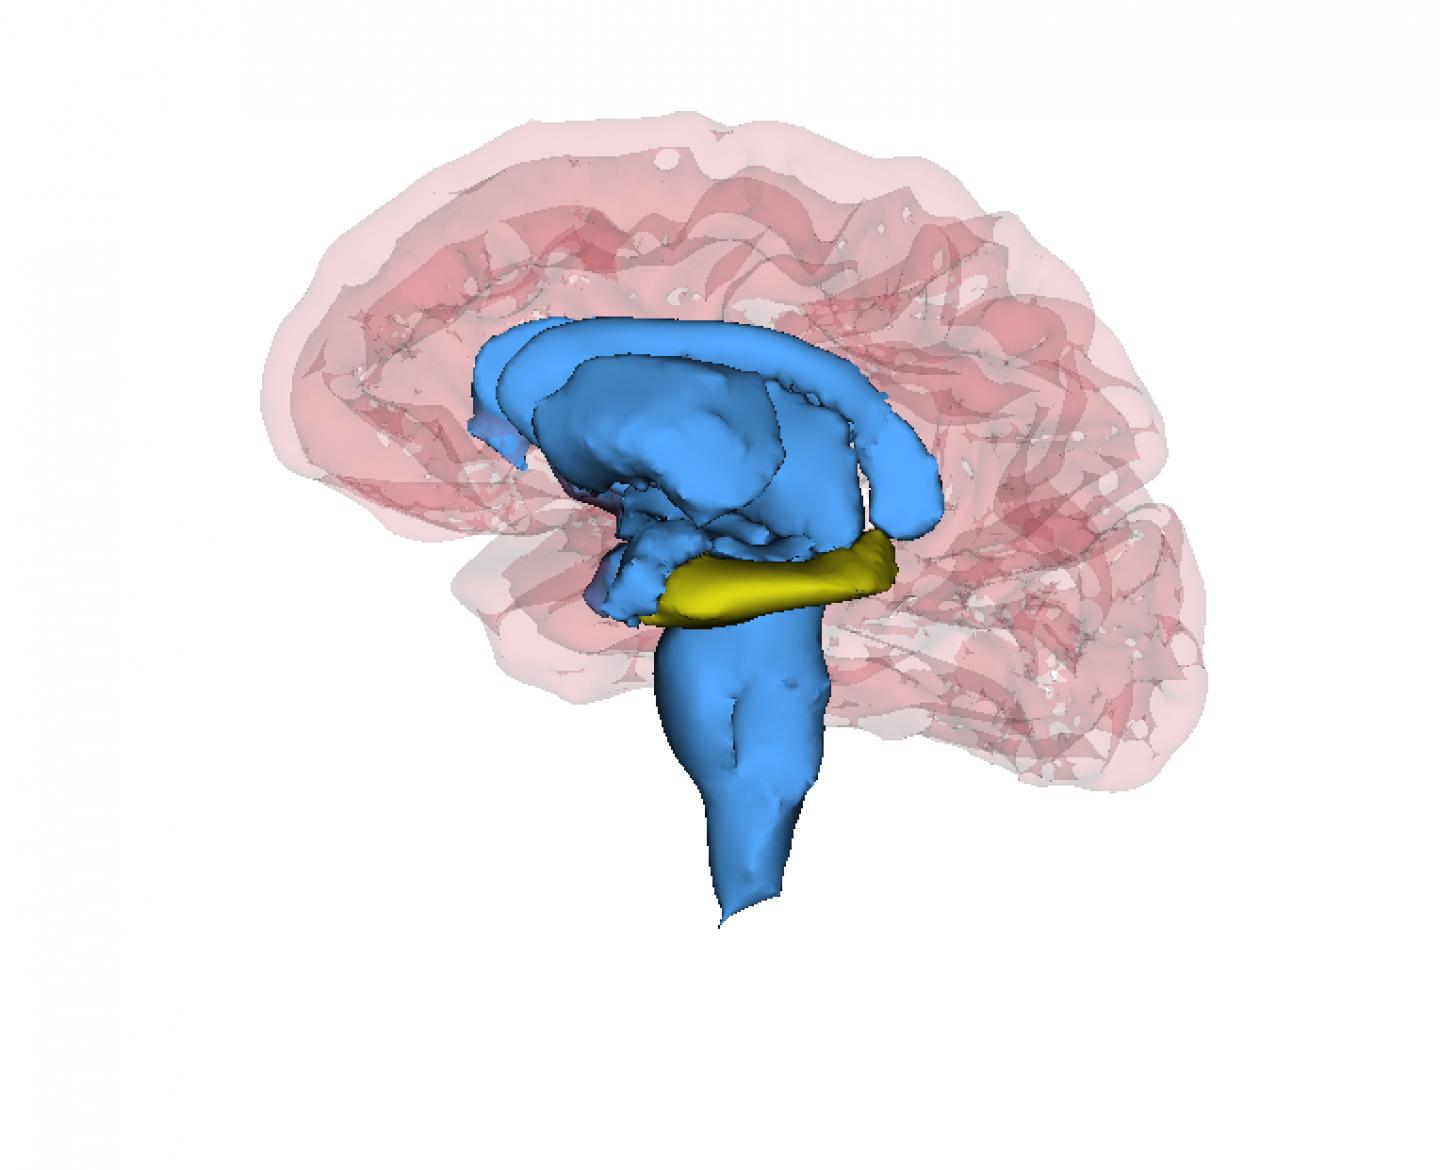 Patients With Recurrent Depression Have Smaller Hippocampi